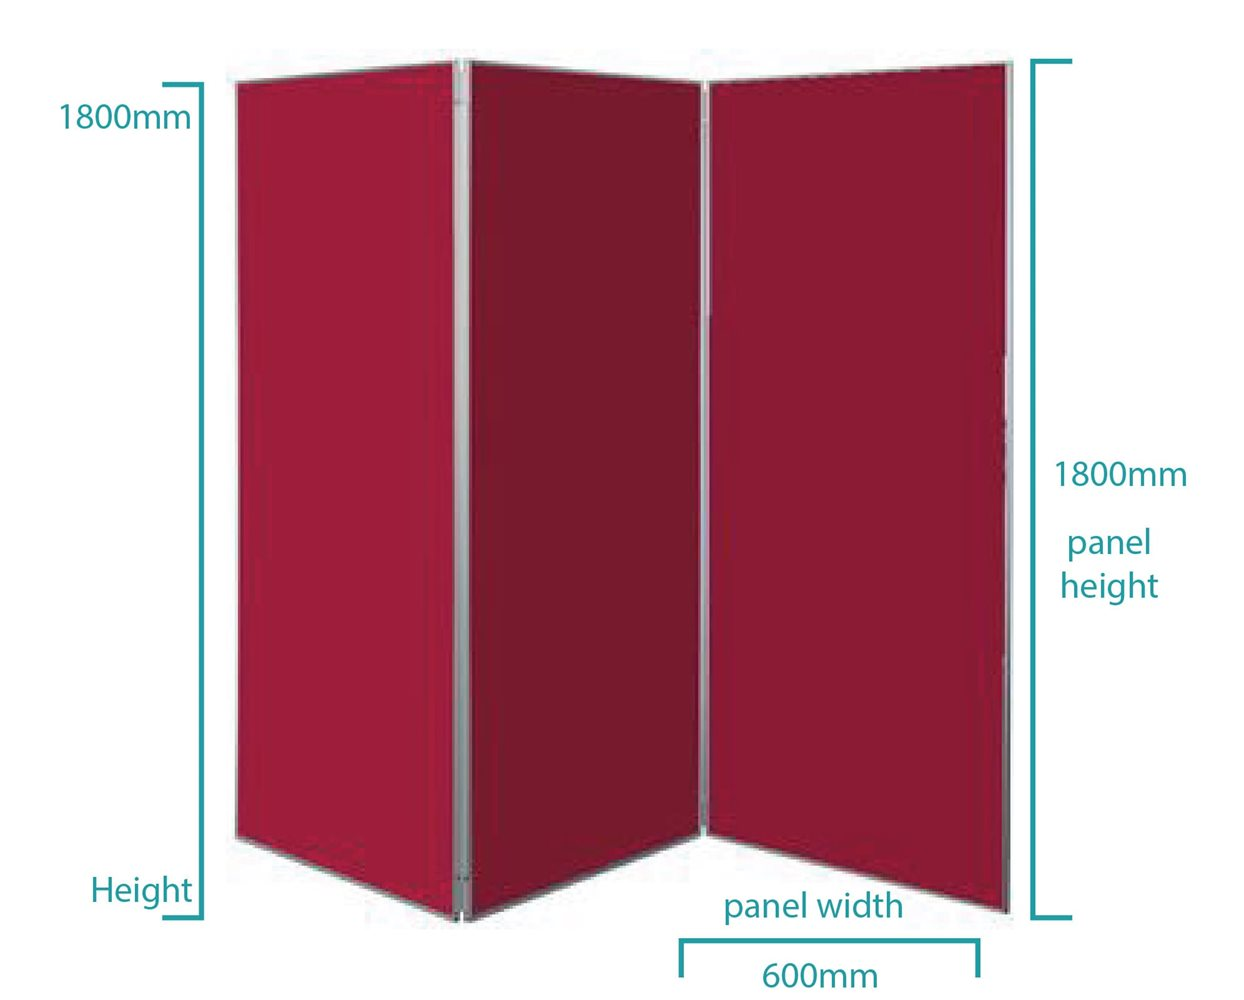 multiscreen display board kit 6 panels Dimensions